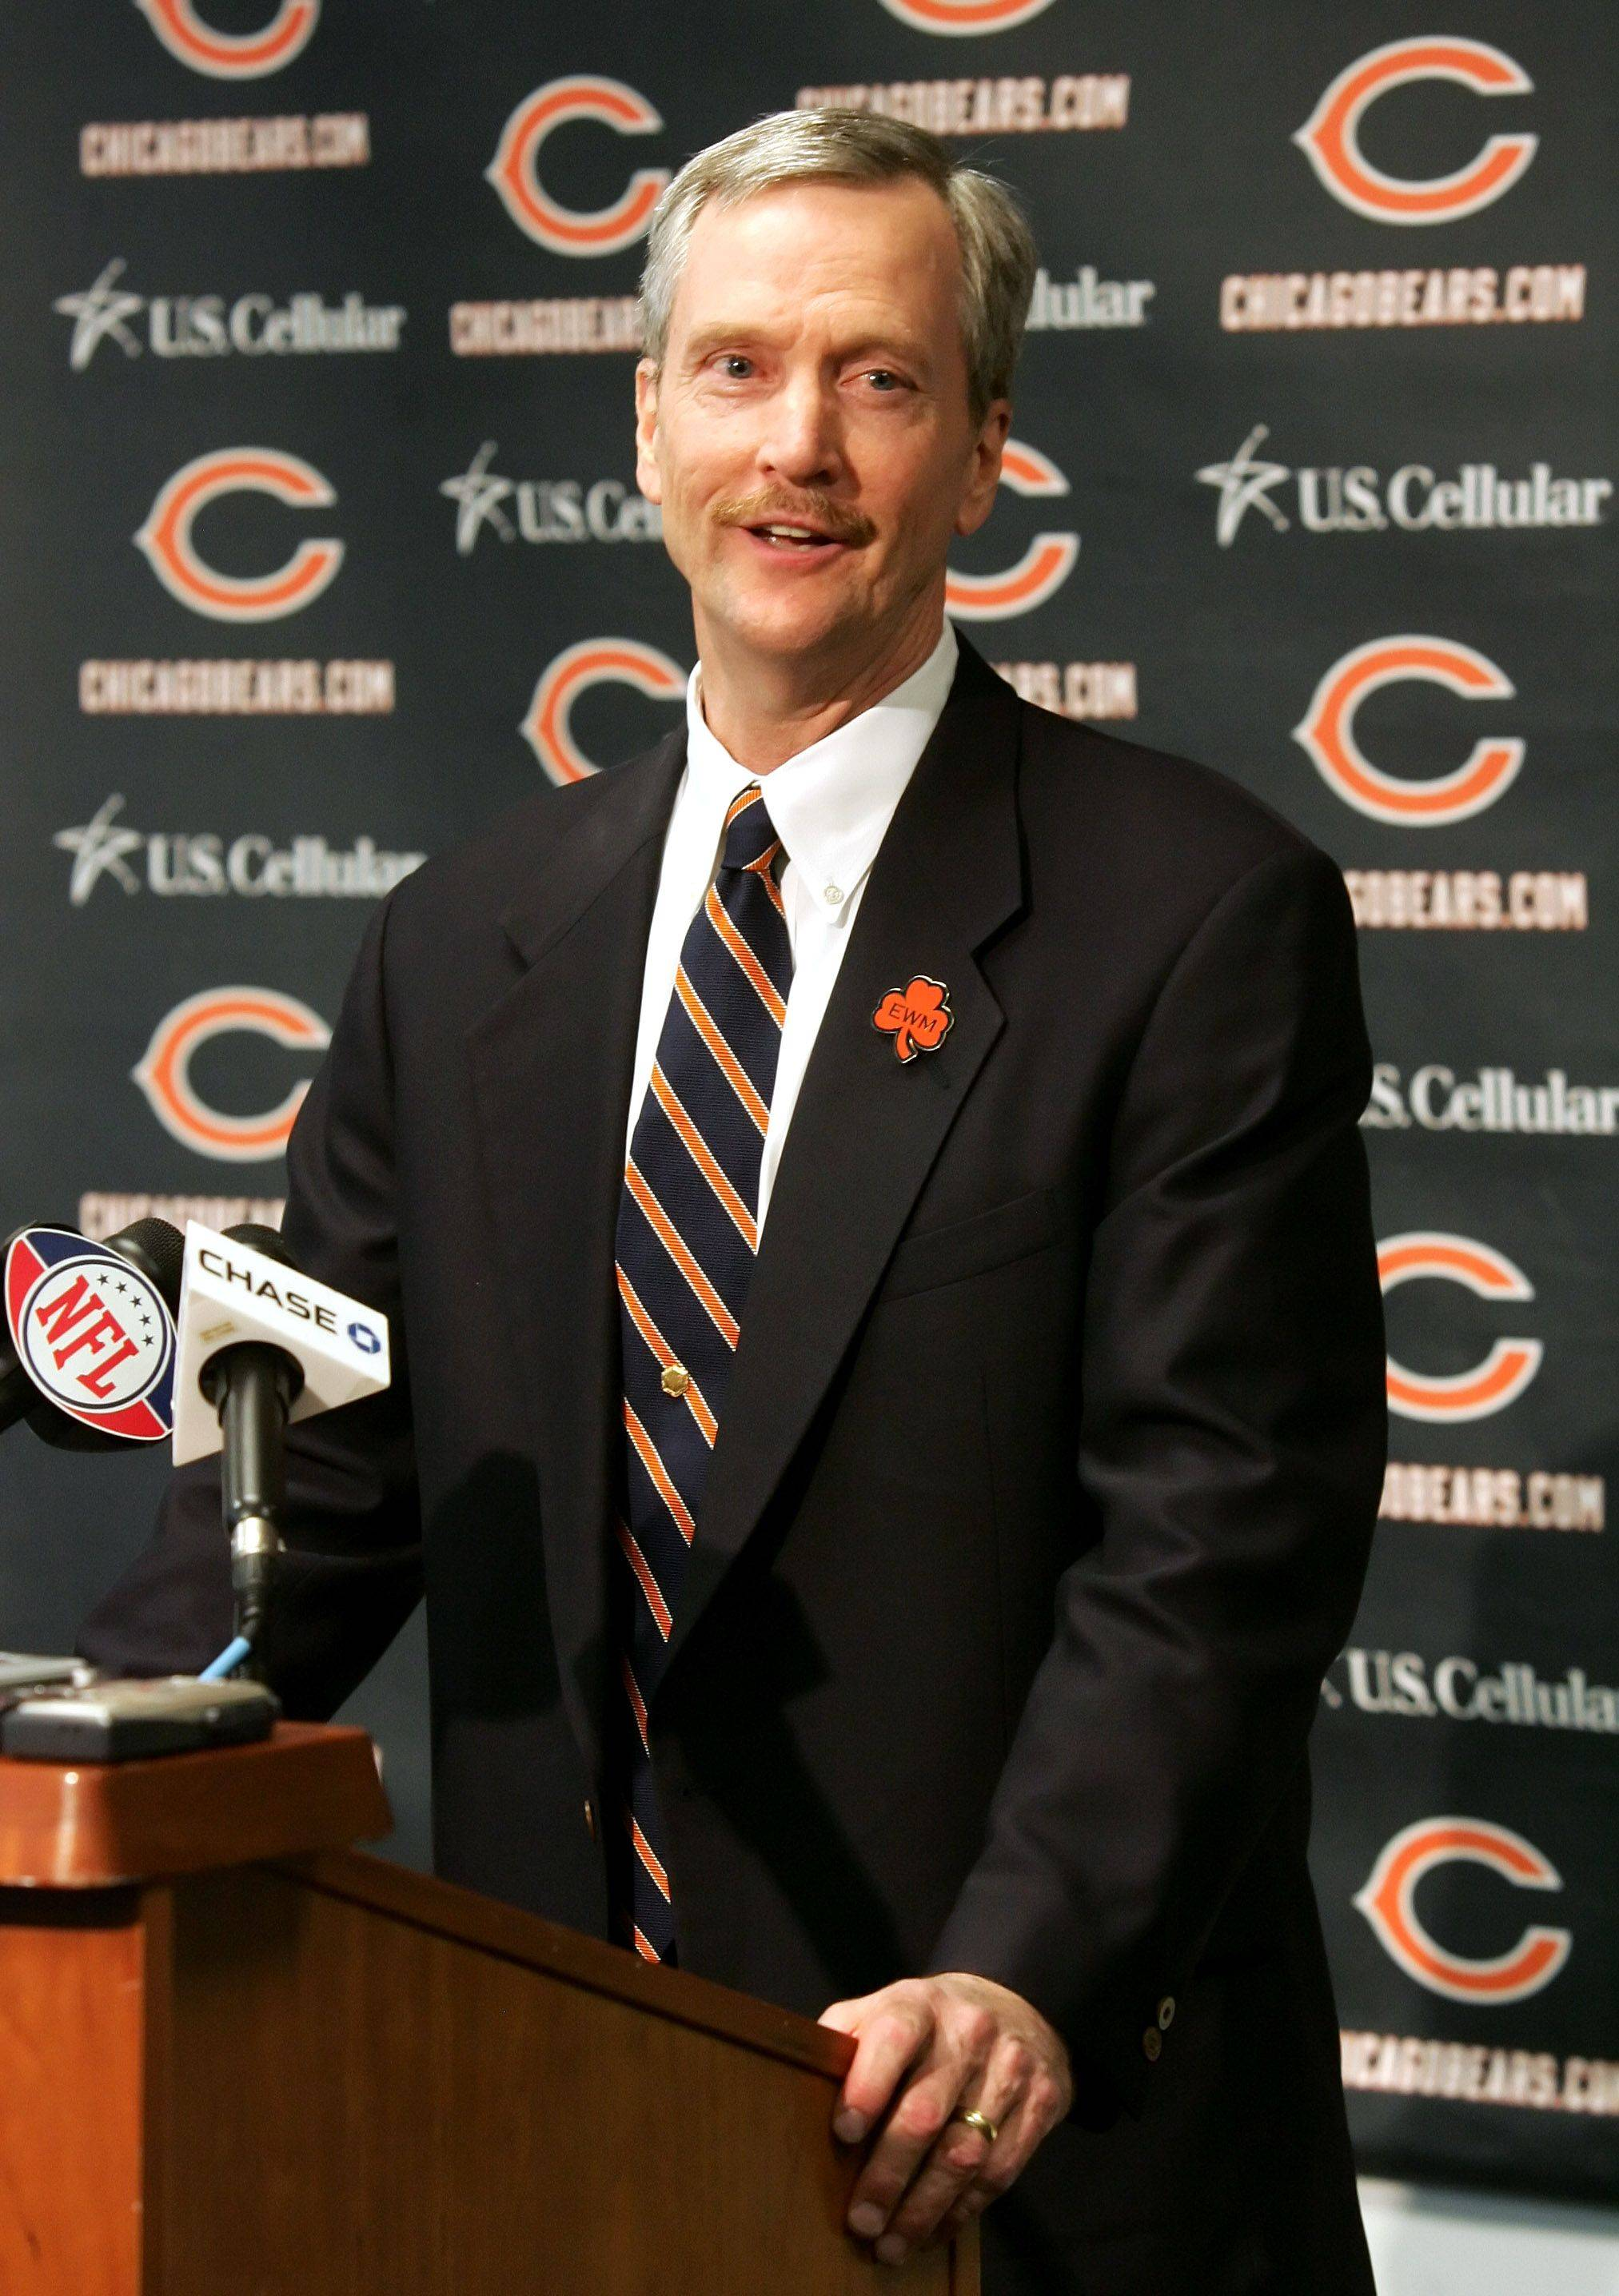 George McCaskey has spent most of his life working in various capacities for the Bears, the team founded by his grandfather. He says he's prepared for his new role as chairman.